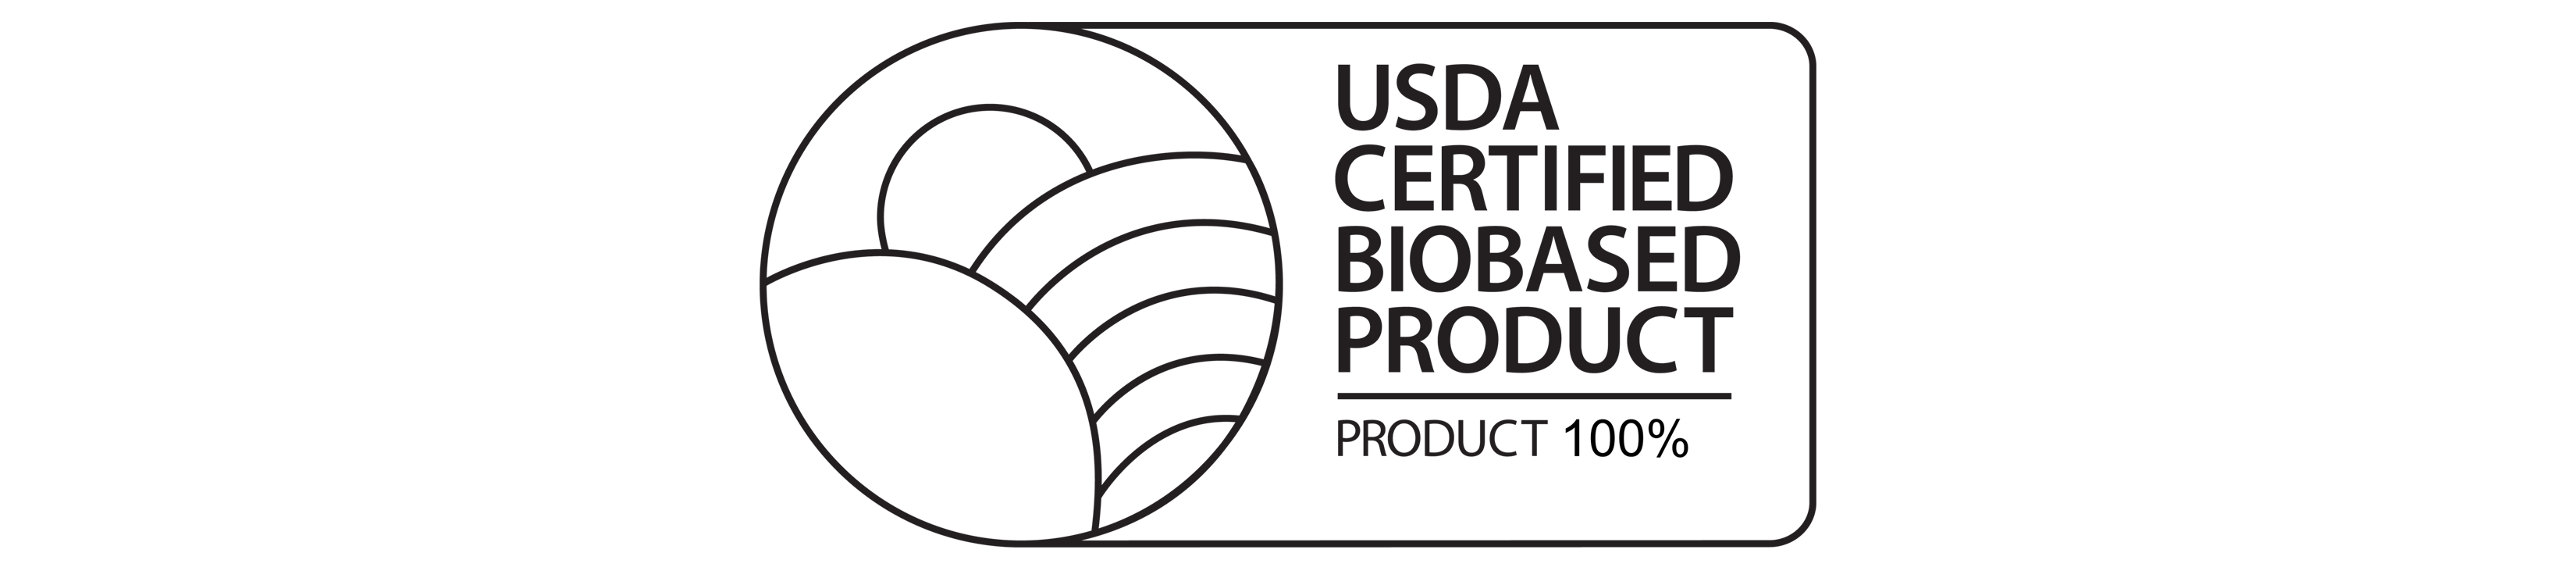 usda certified biobased product 100% image